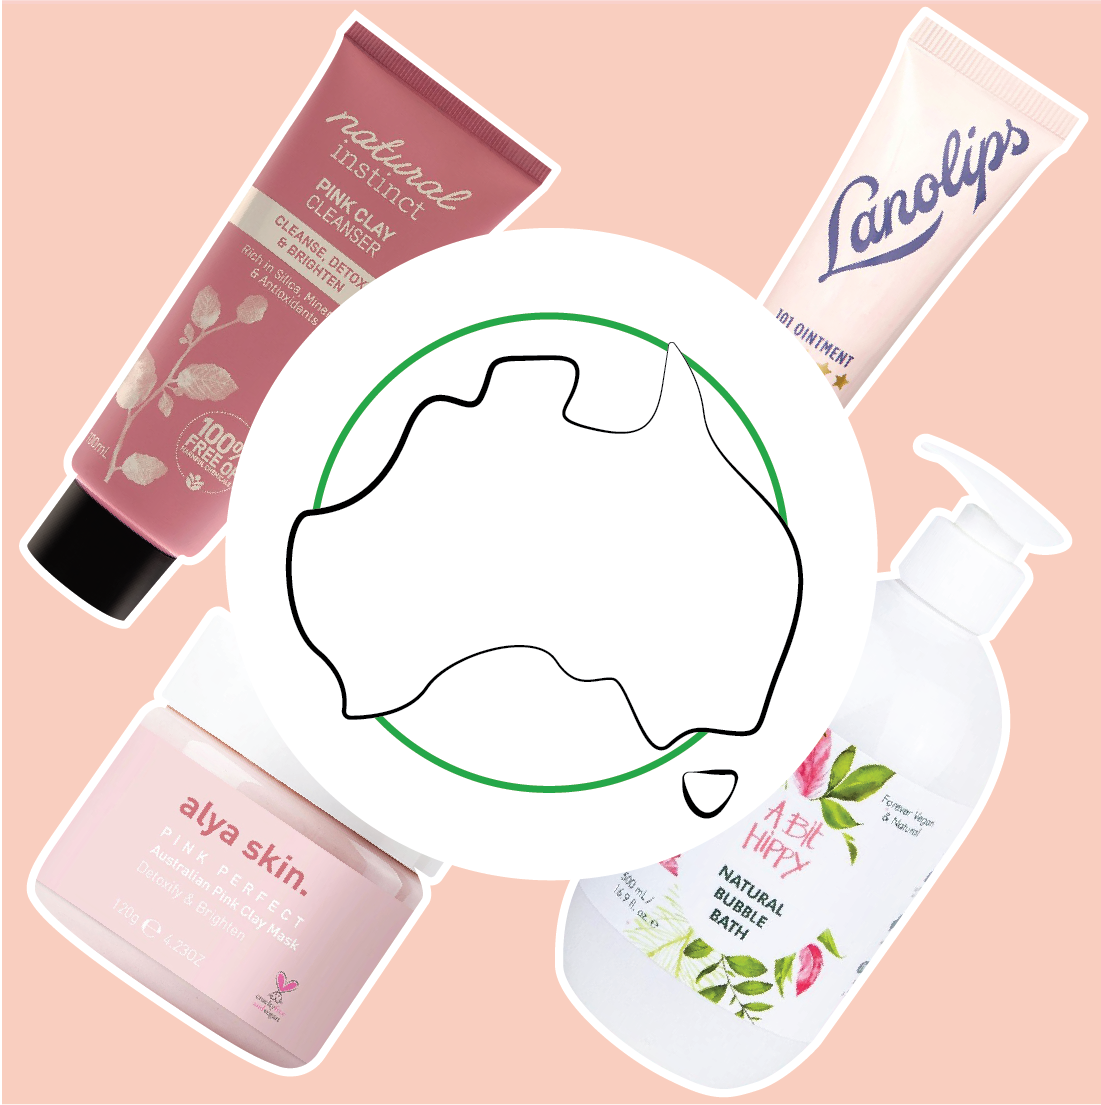 Australian Made icon overlapping four Australian made products stocked online by The Pharmacy Network